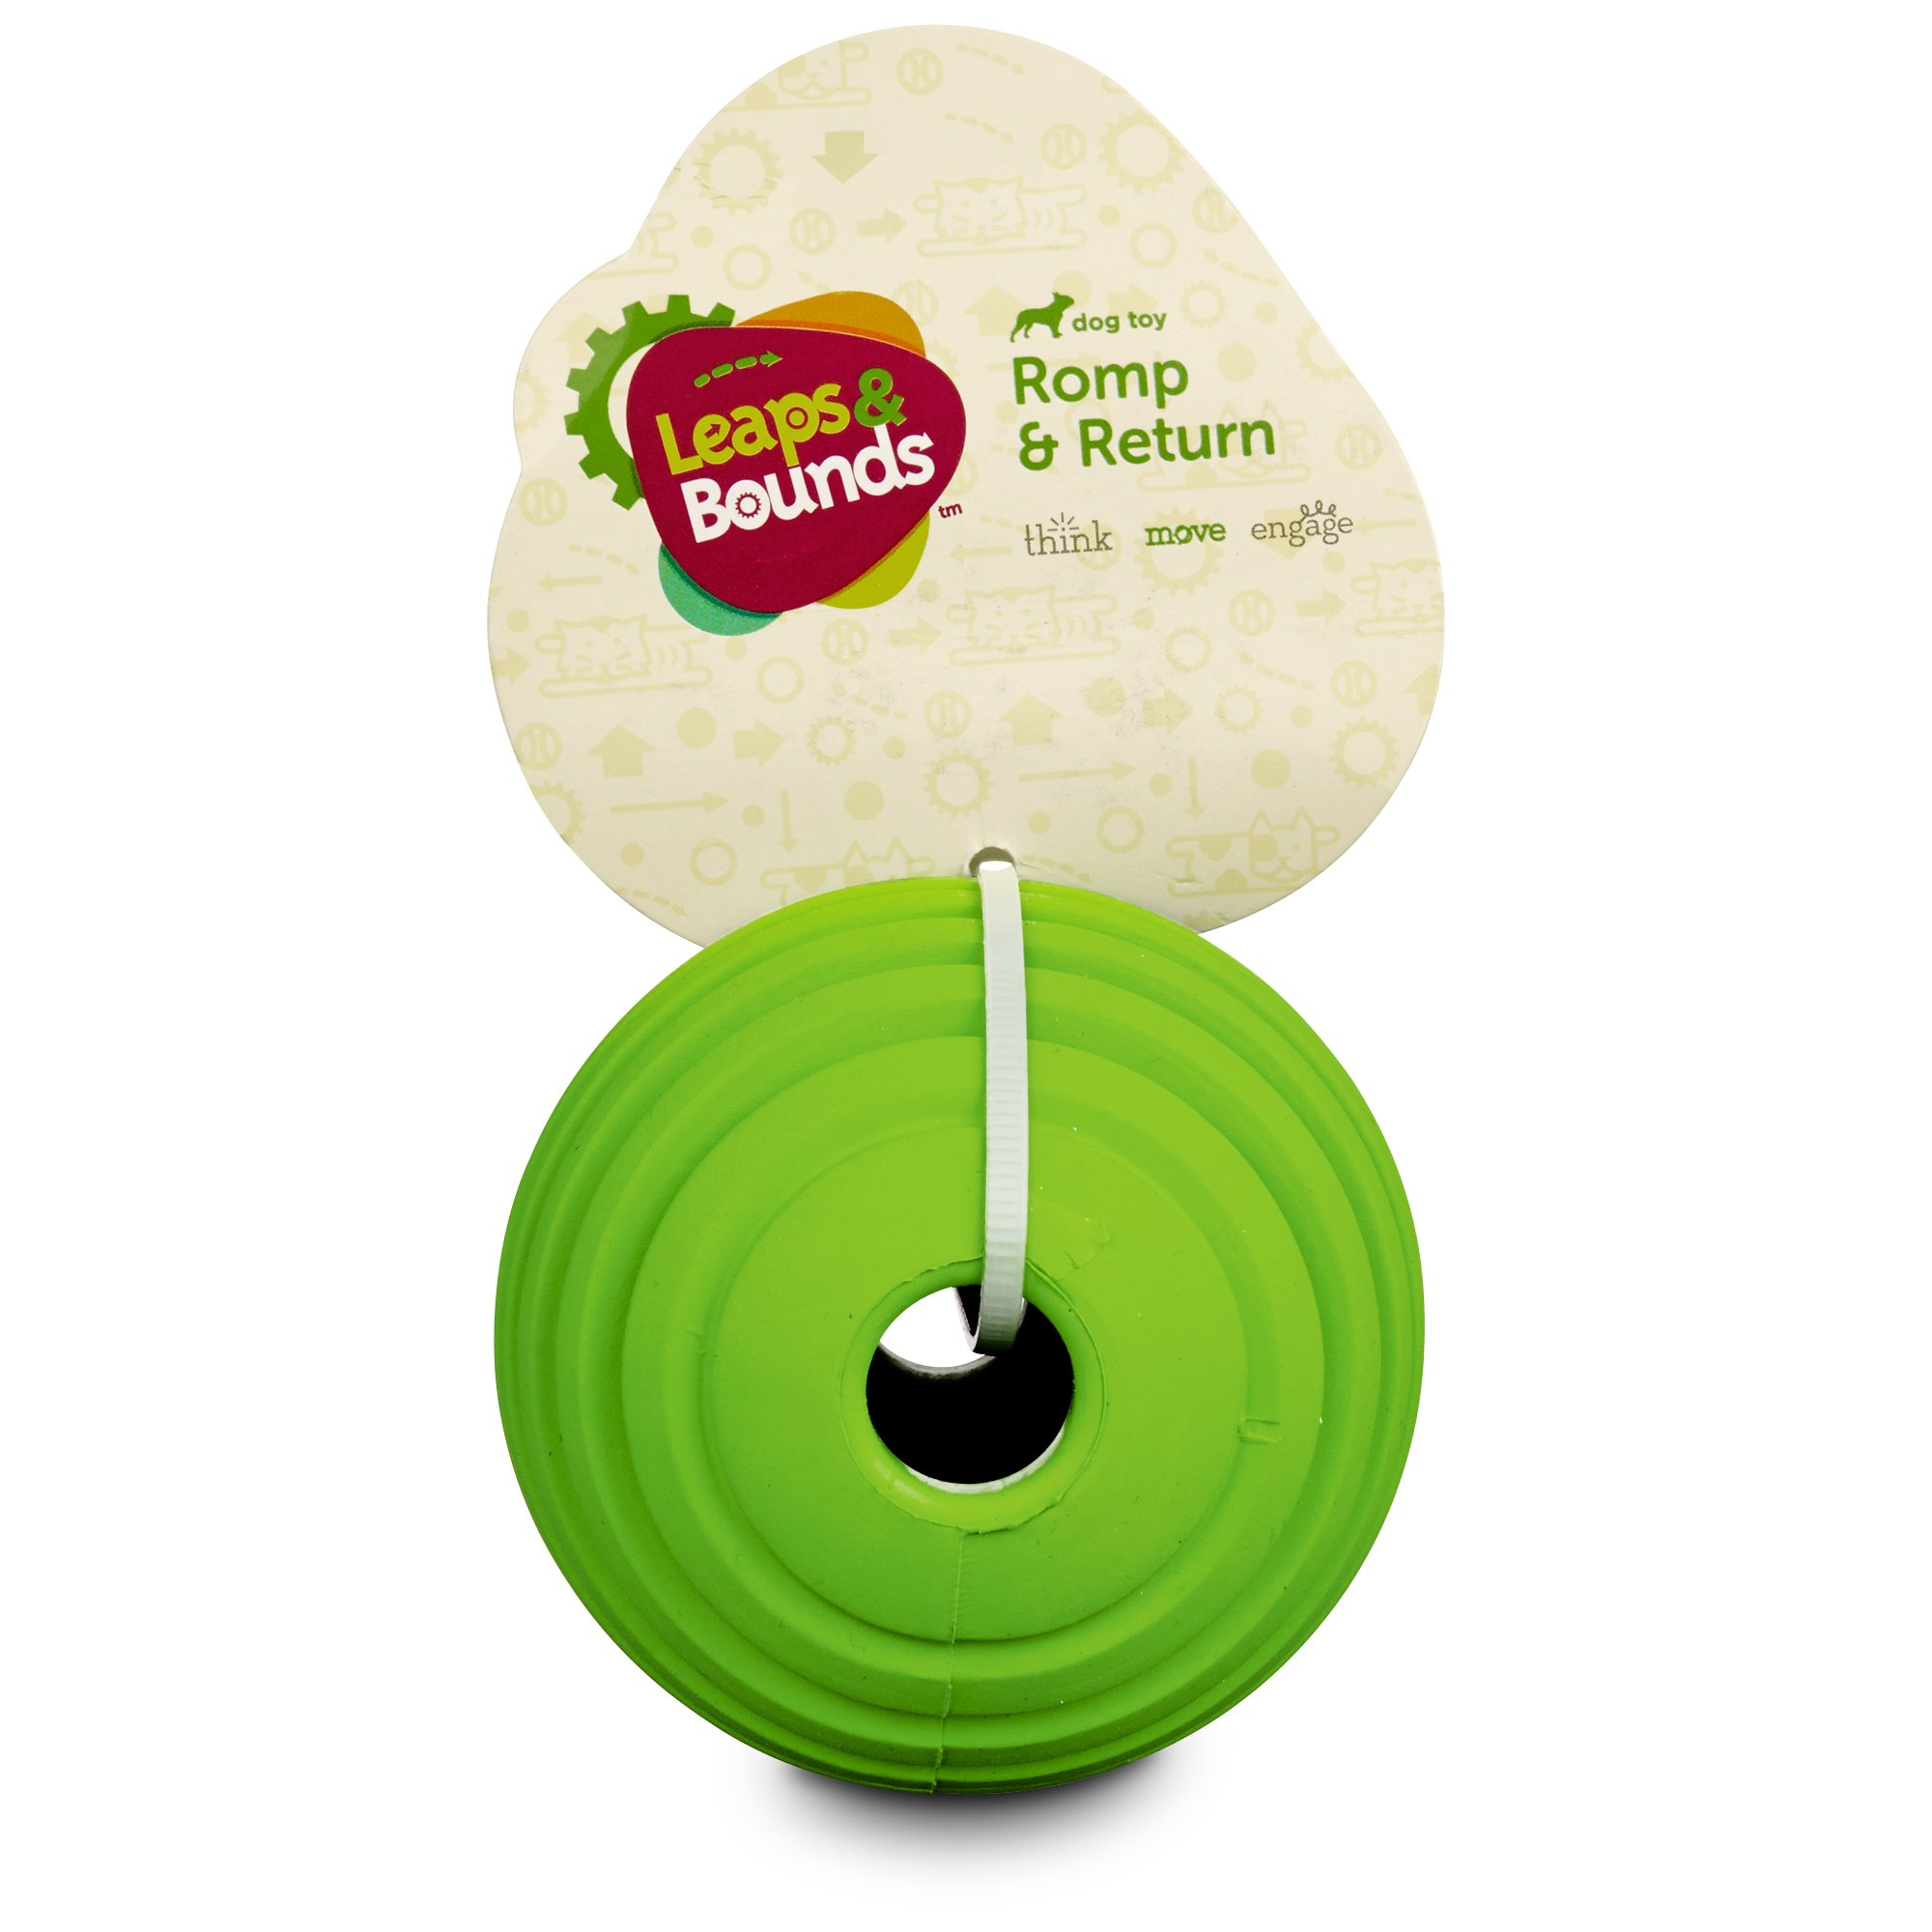 Leaps & Bounds dog food and supplies online. Shop online with Petbarn today.